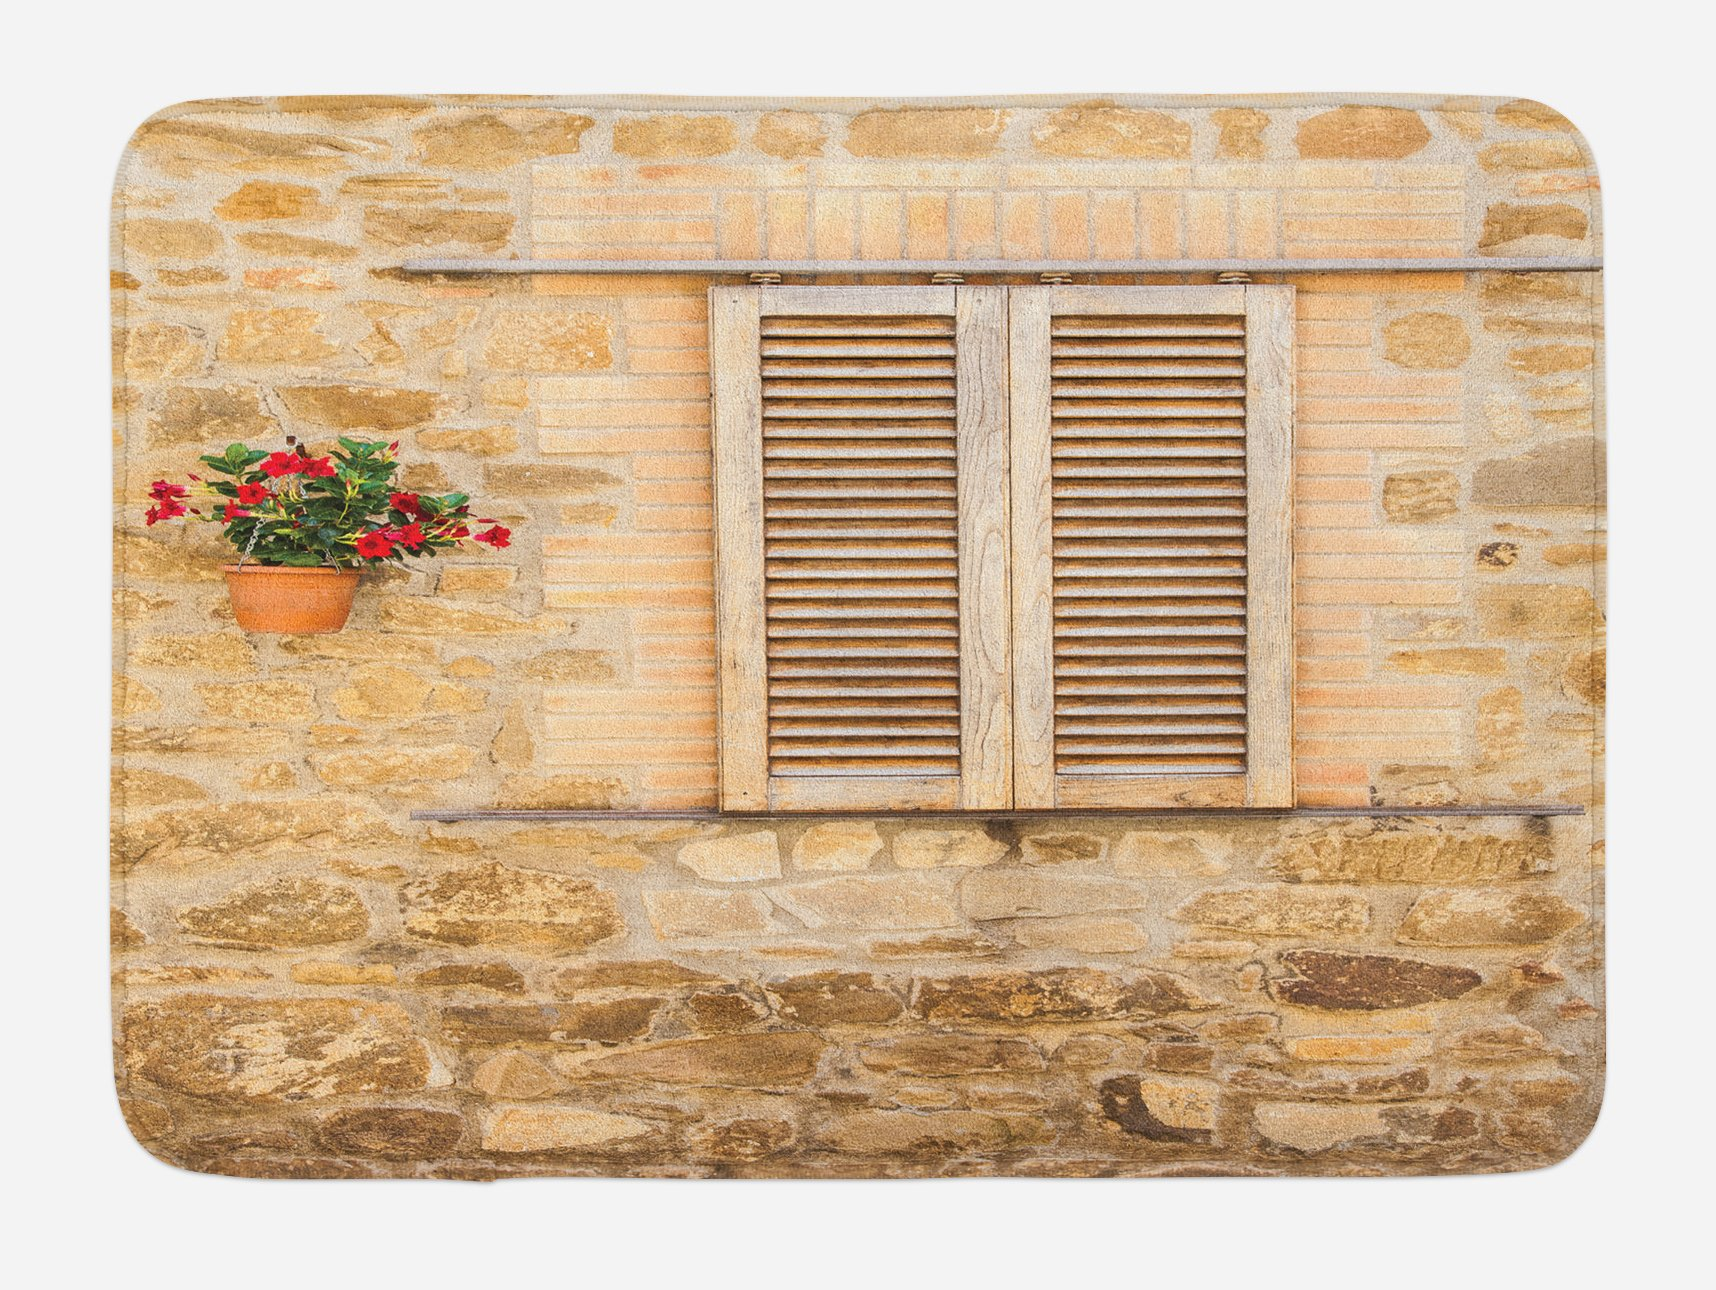 Lunarable Tuscan Bath Mat, Rustic Stone House and Window Shutters Flower Pot on Wall Italian Country Home Theme, Plush Bathroom Decor Mat with Non Slip Backing, 29.5 W X 17.5 W Inches, Beige